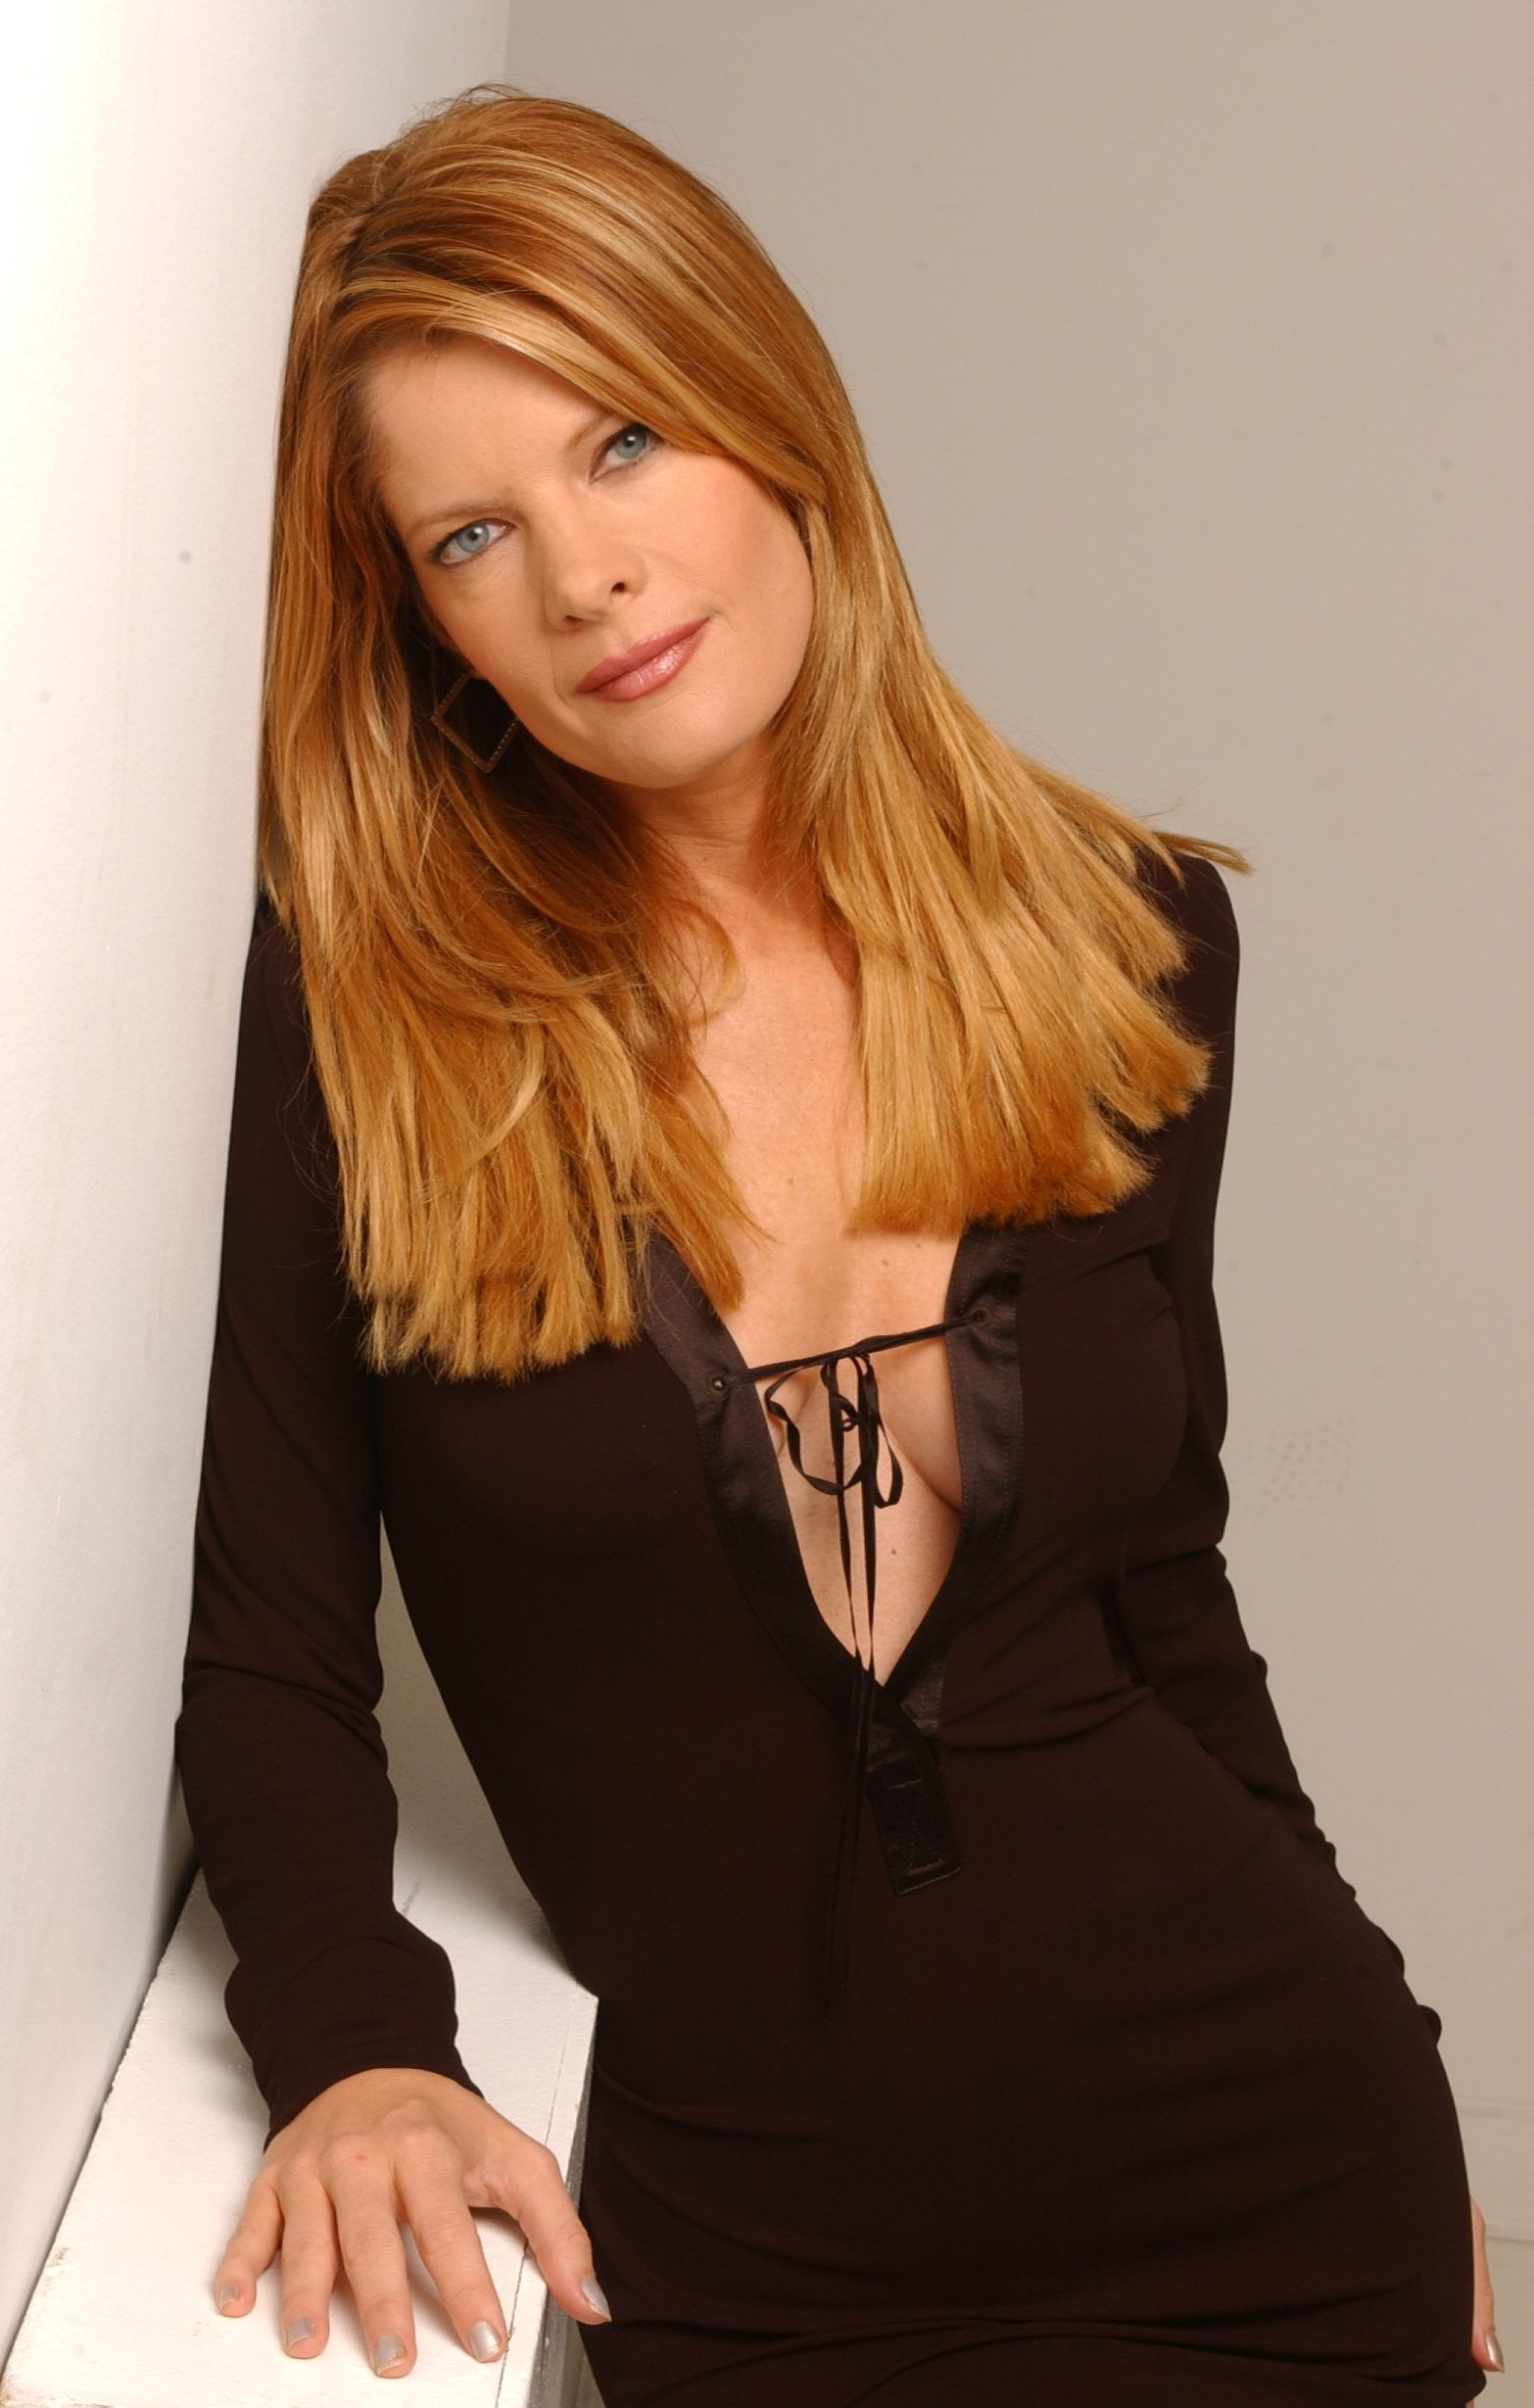 Michelle Stafford as Phyllis on The Young and the Restless